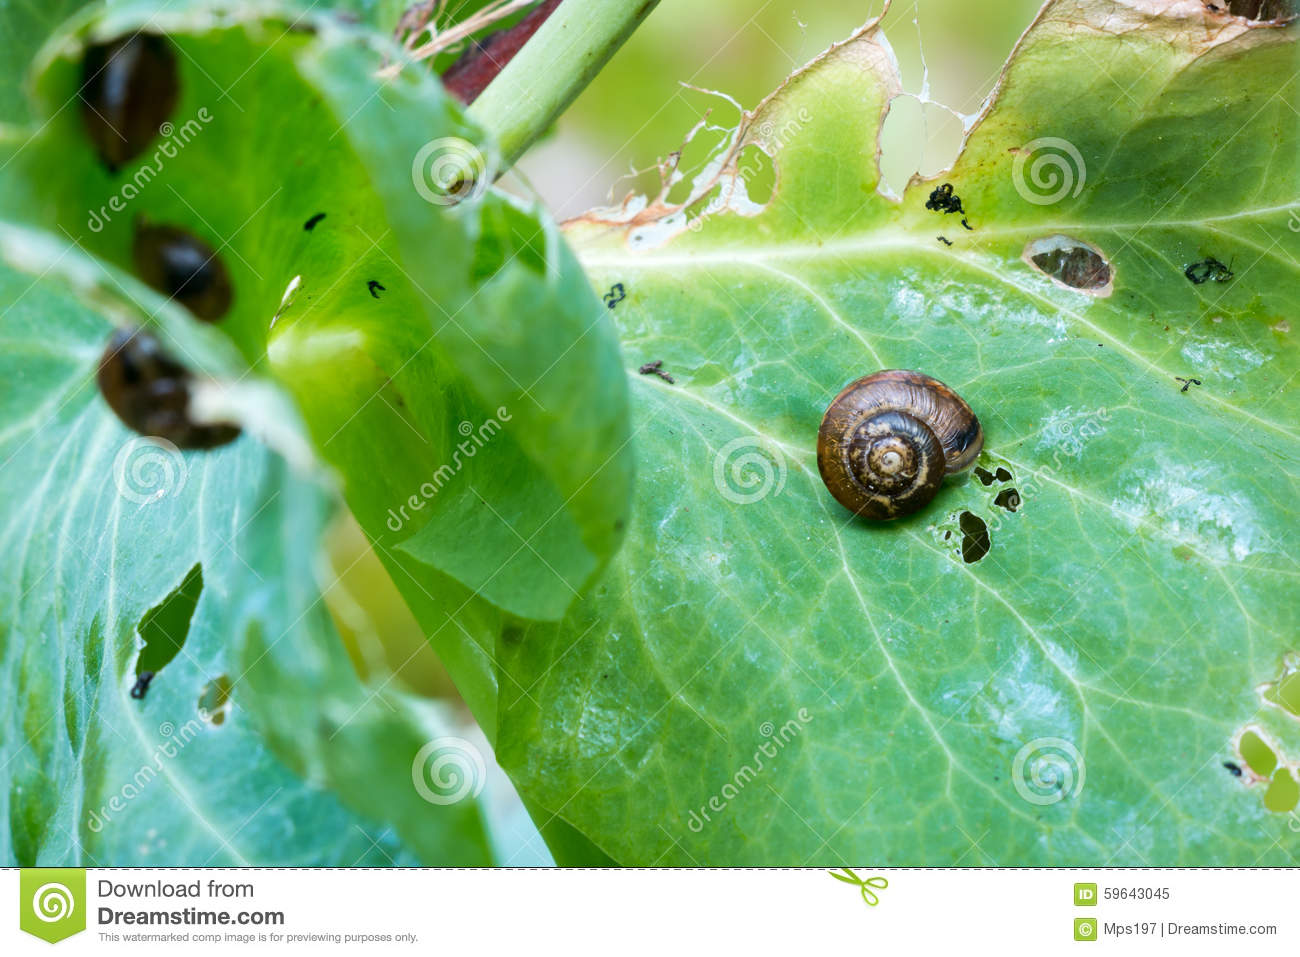 Copse Snails Eating Green Pea Leaves Stock Photo.